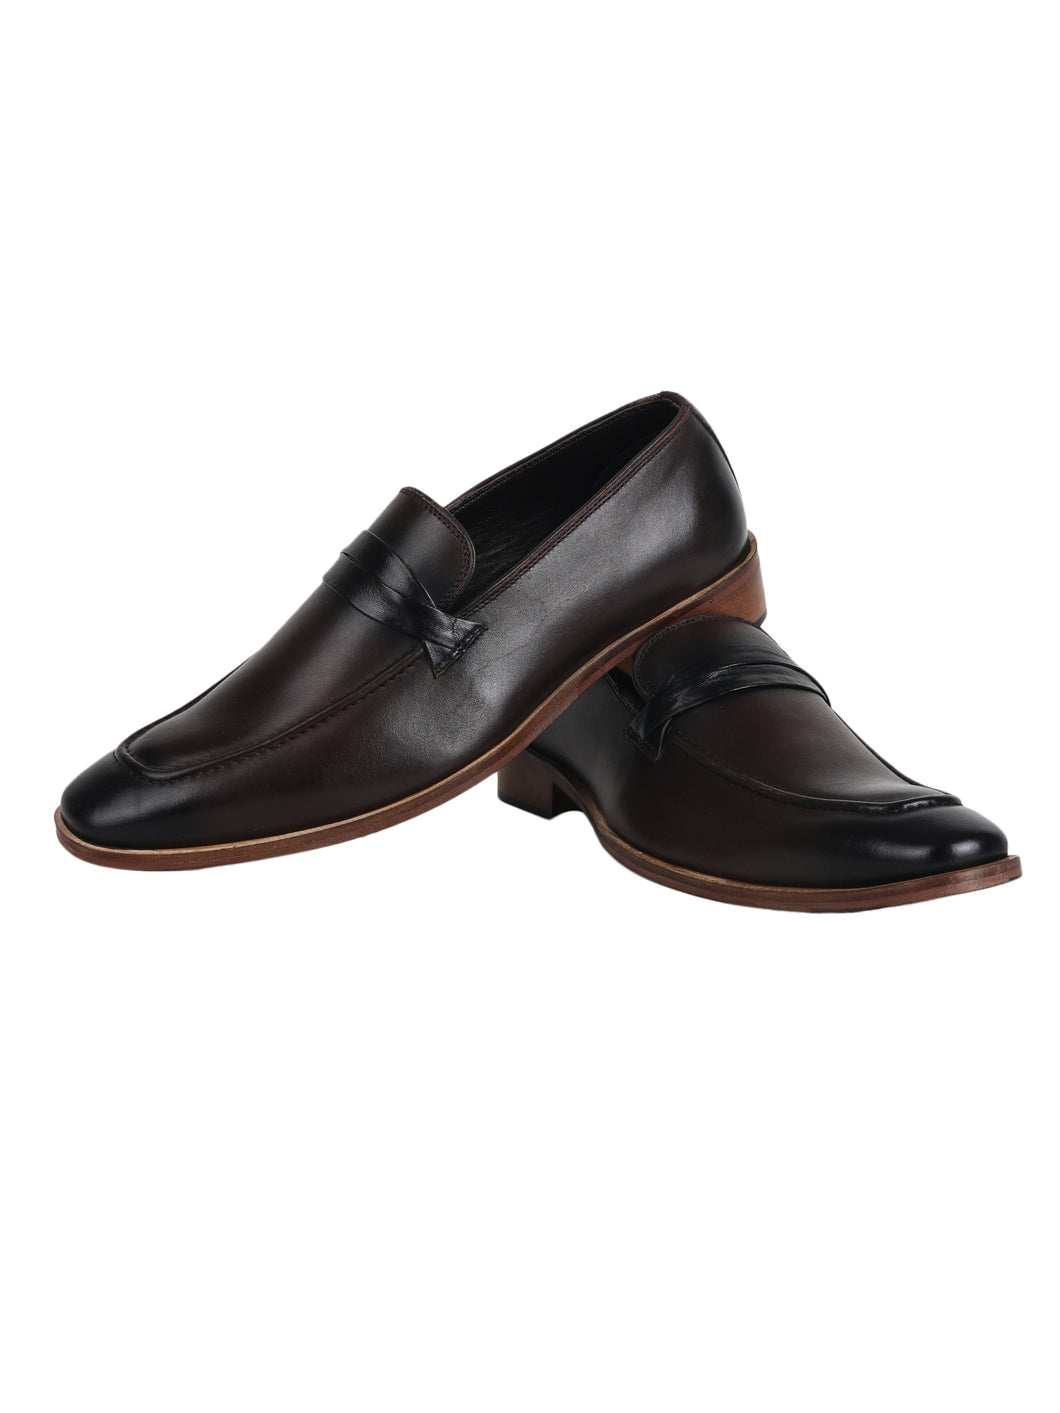 Debonair Choco Cognac Loafer with Black Trims